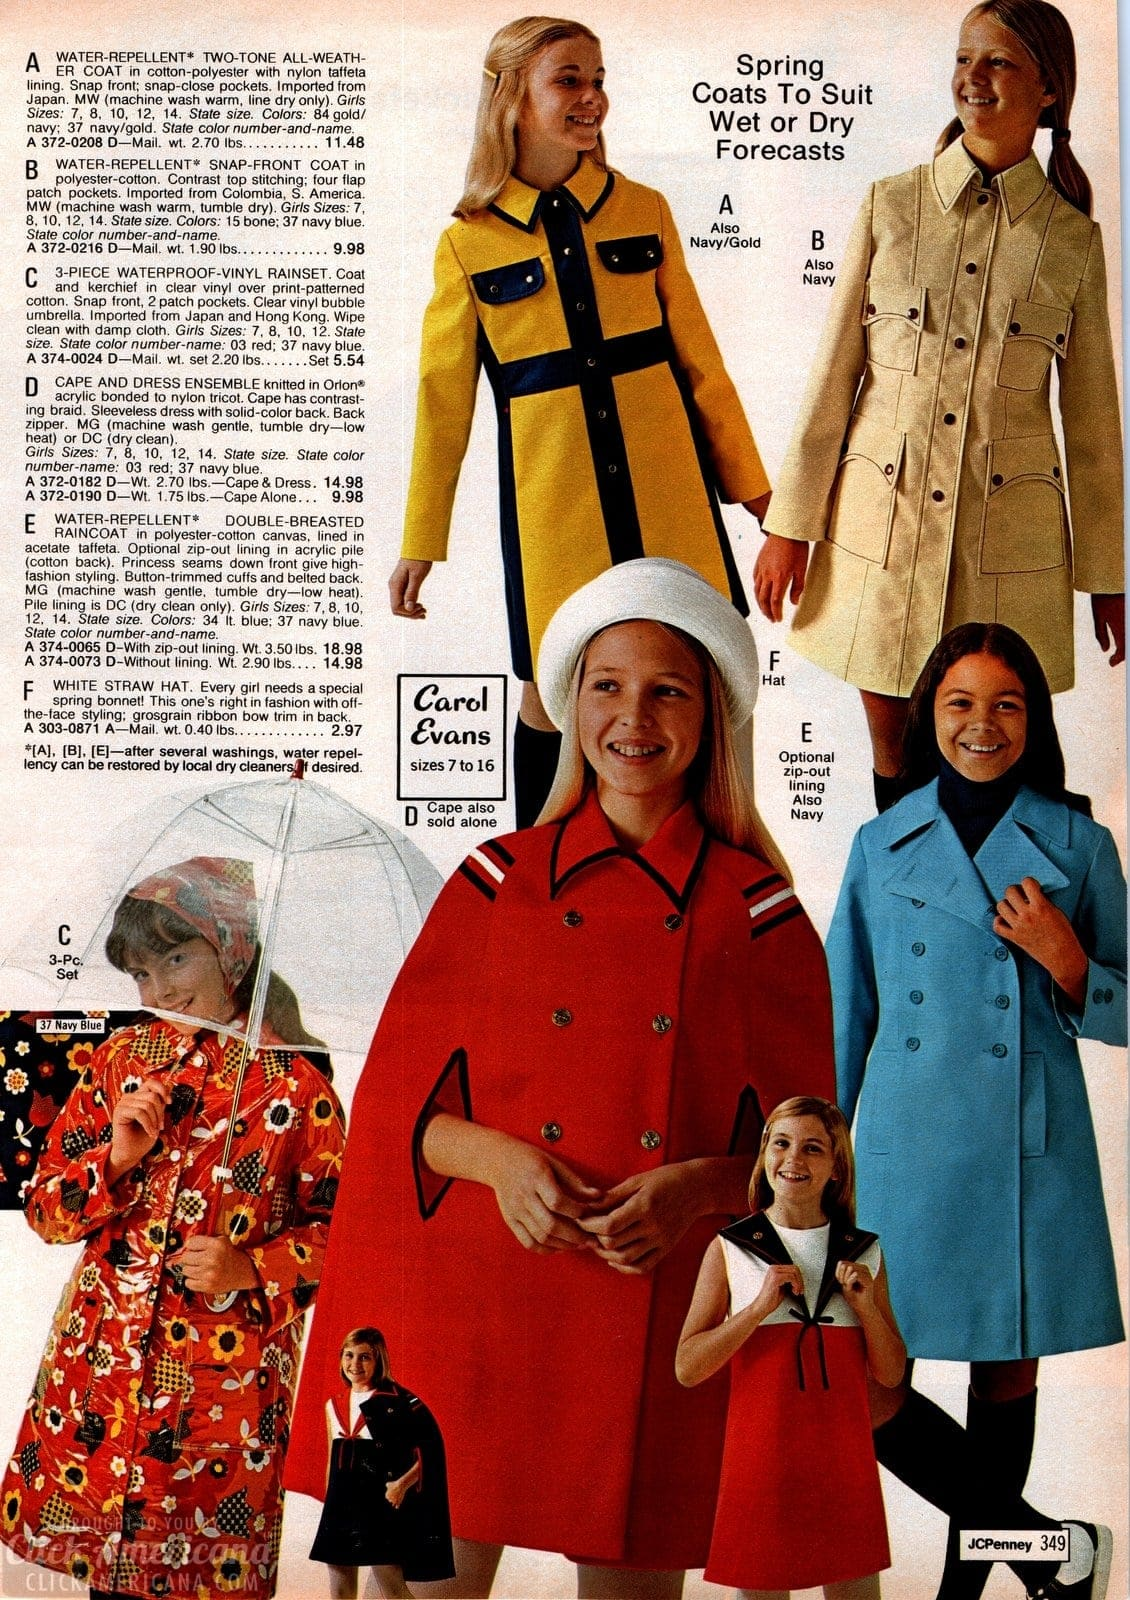 Retro spring raincoats for girls - plus capes and rainsets